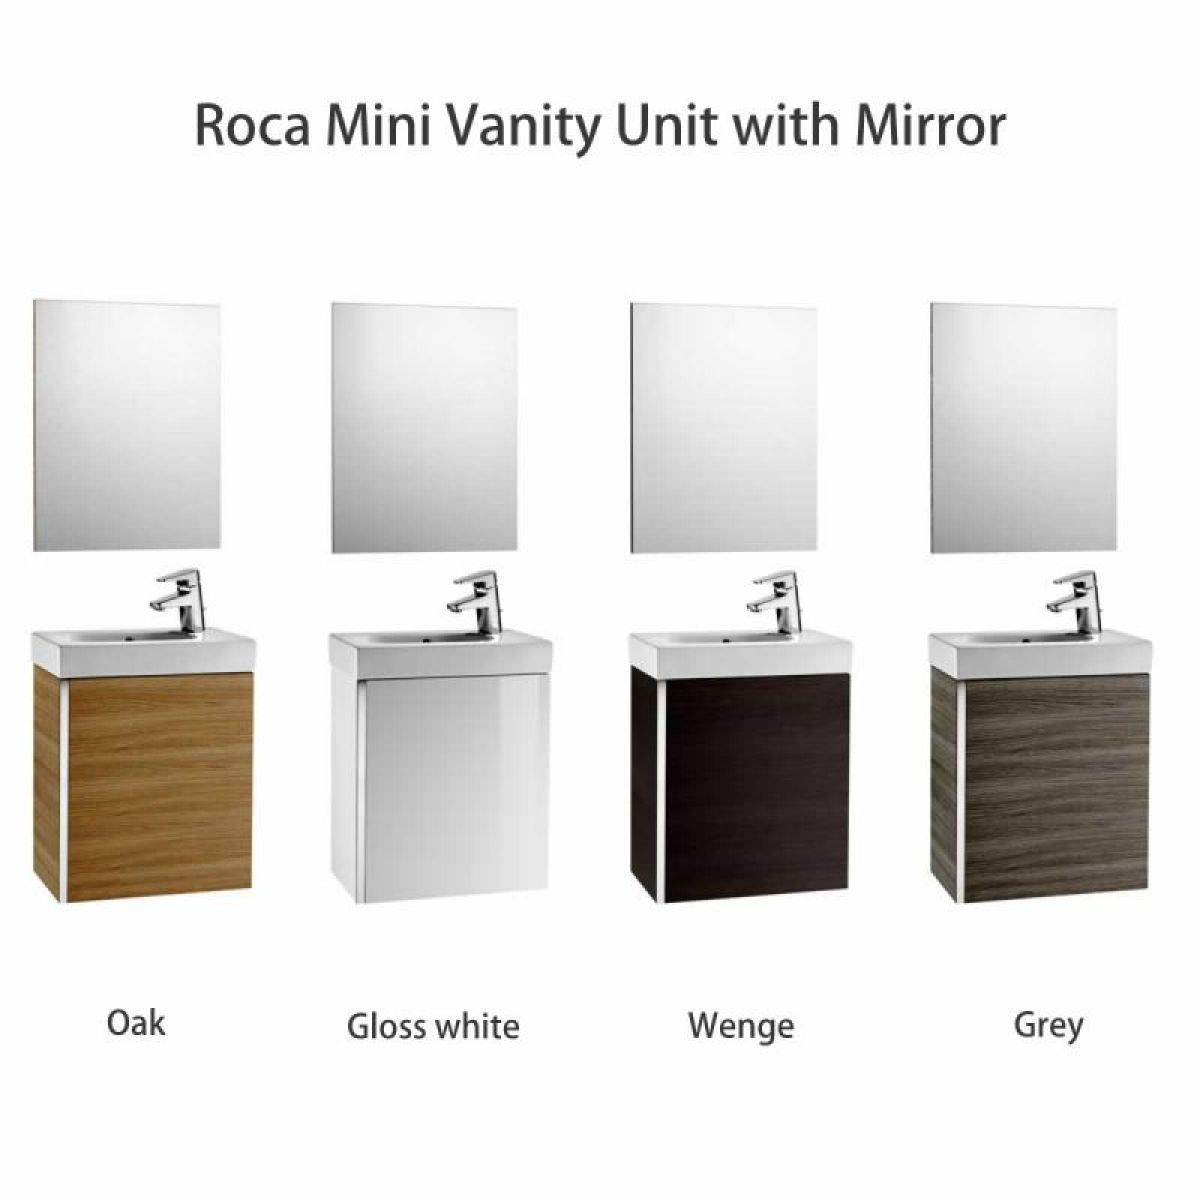 Roca Mini Vanity Unit with Basin | Vanity units, Vanities and ...